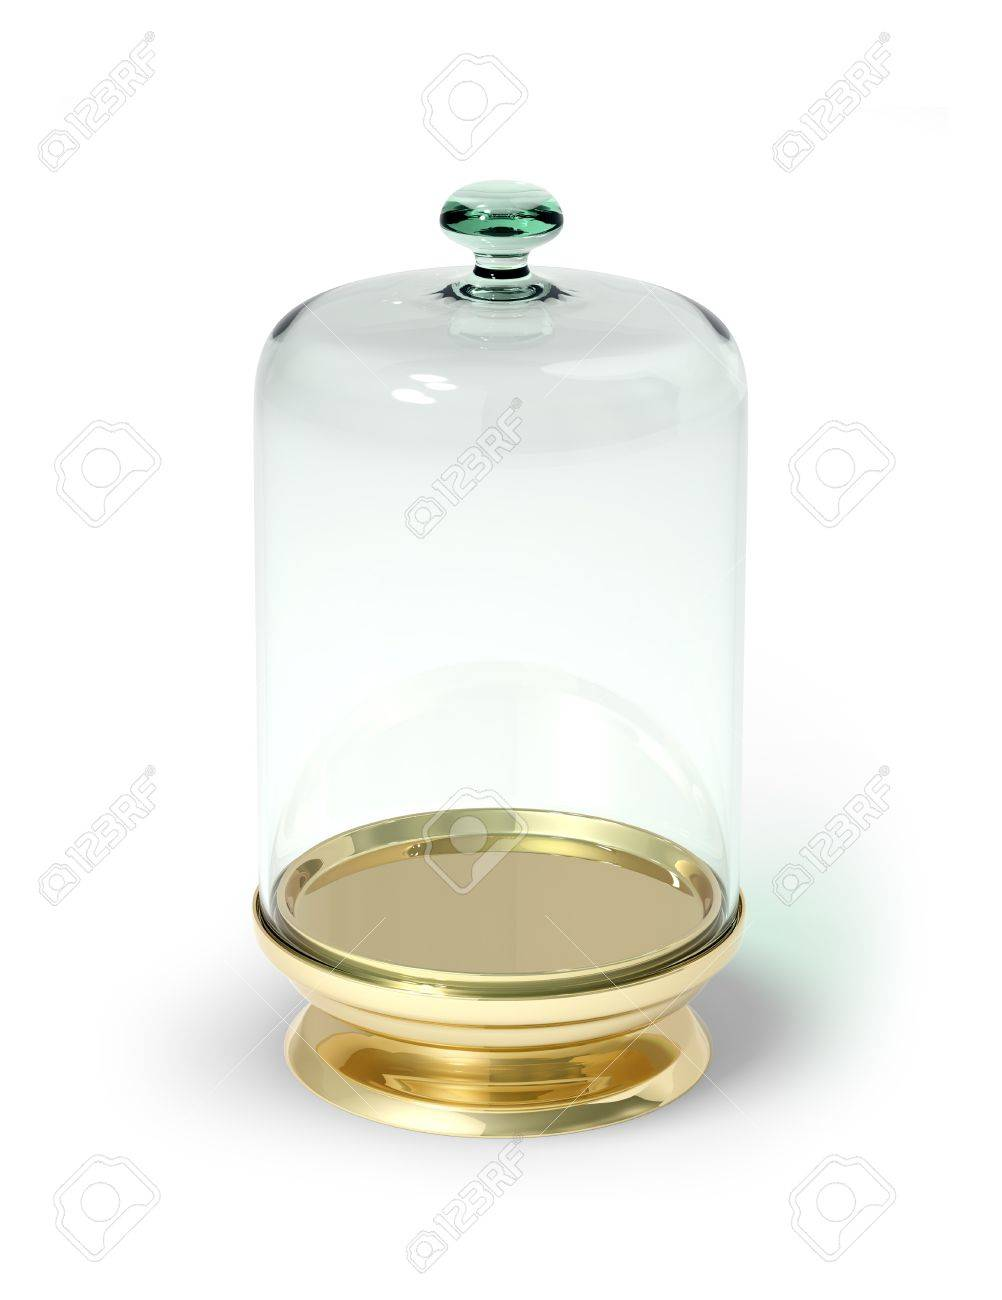 Gold stand with glass bell isolated 3d model - 12051979